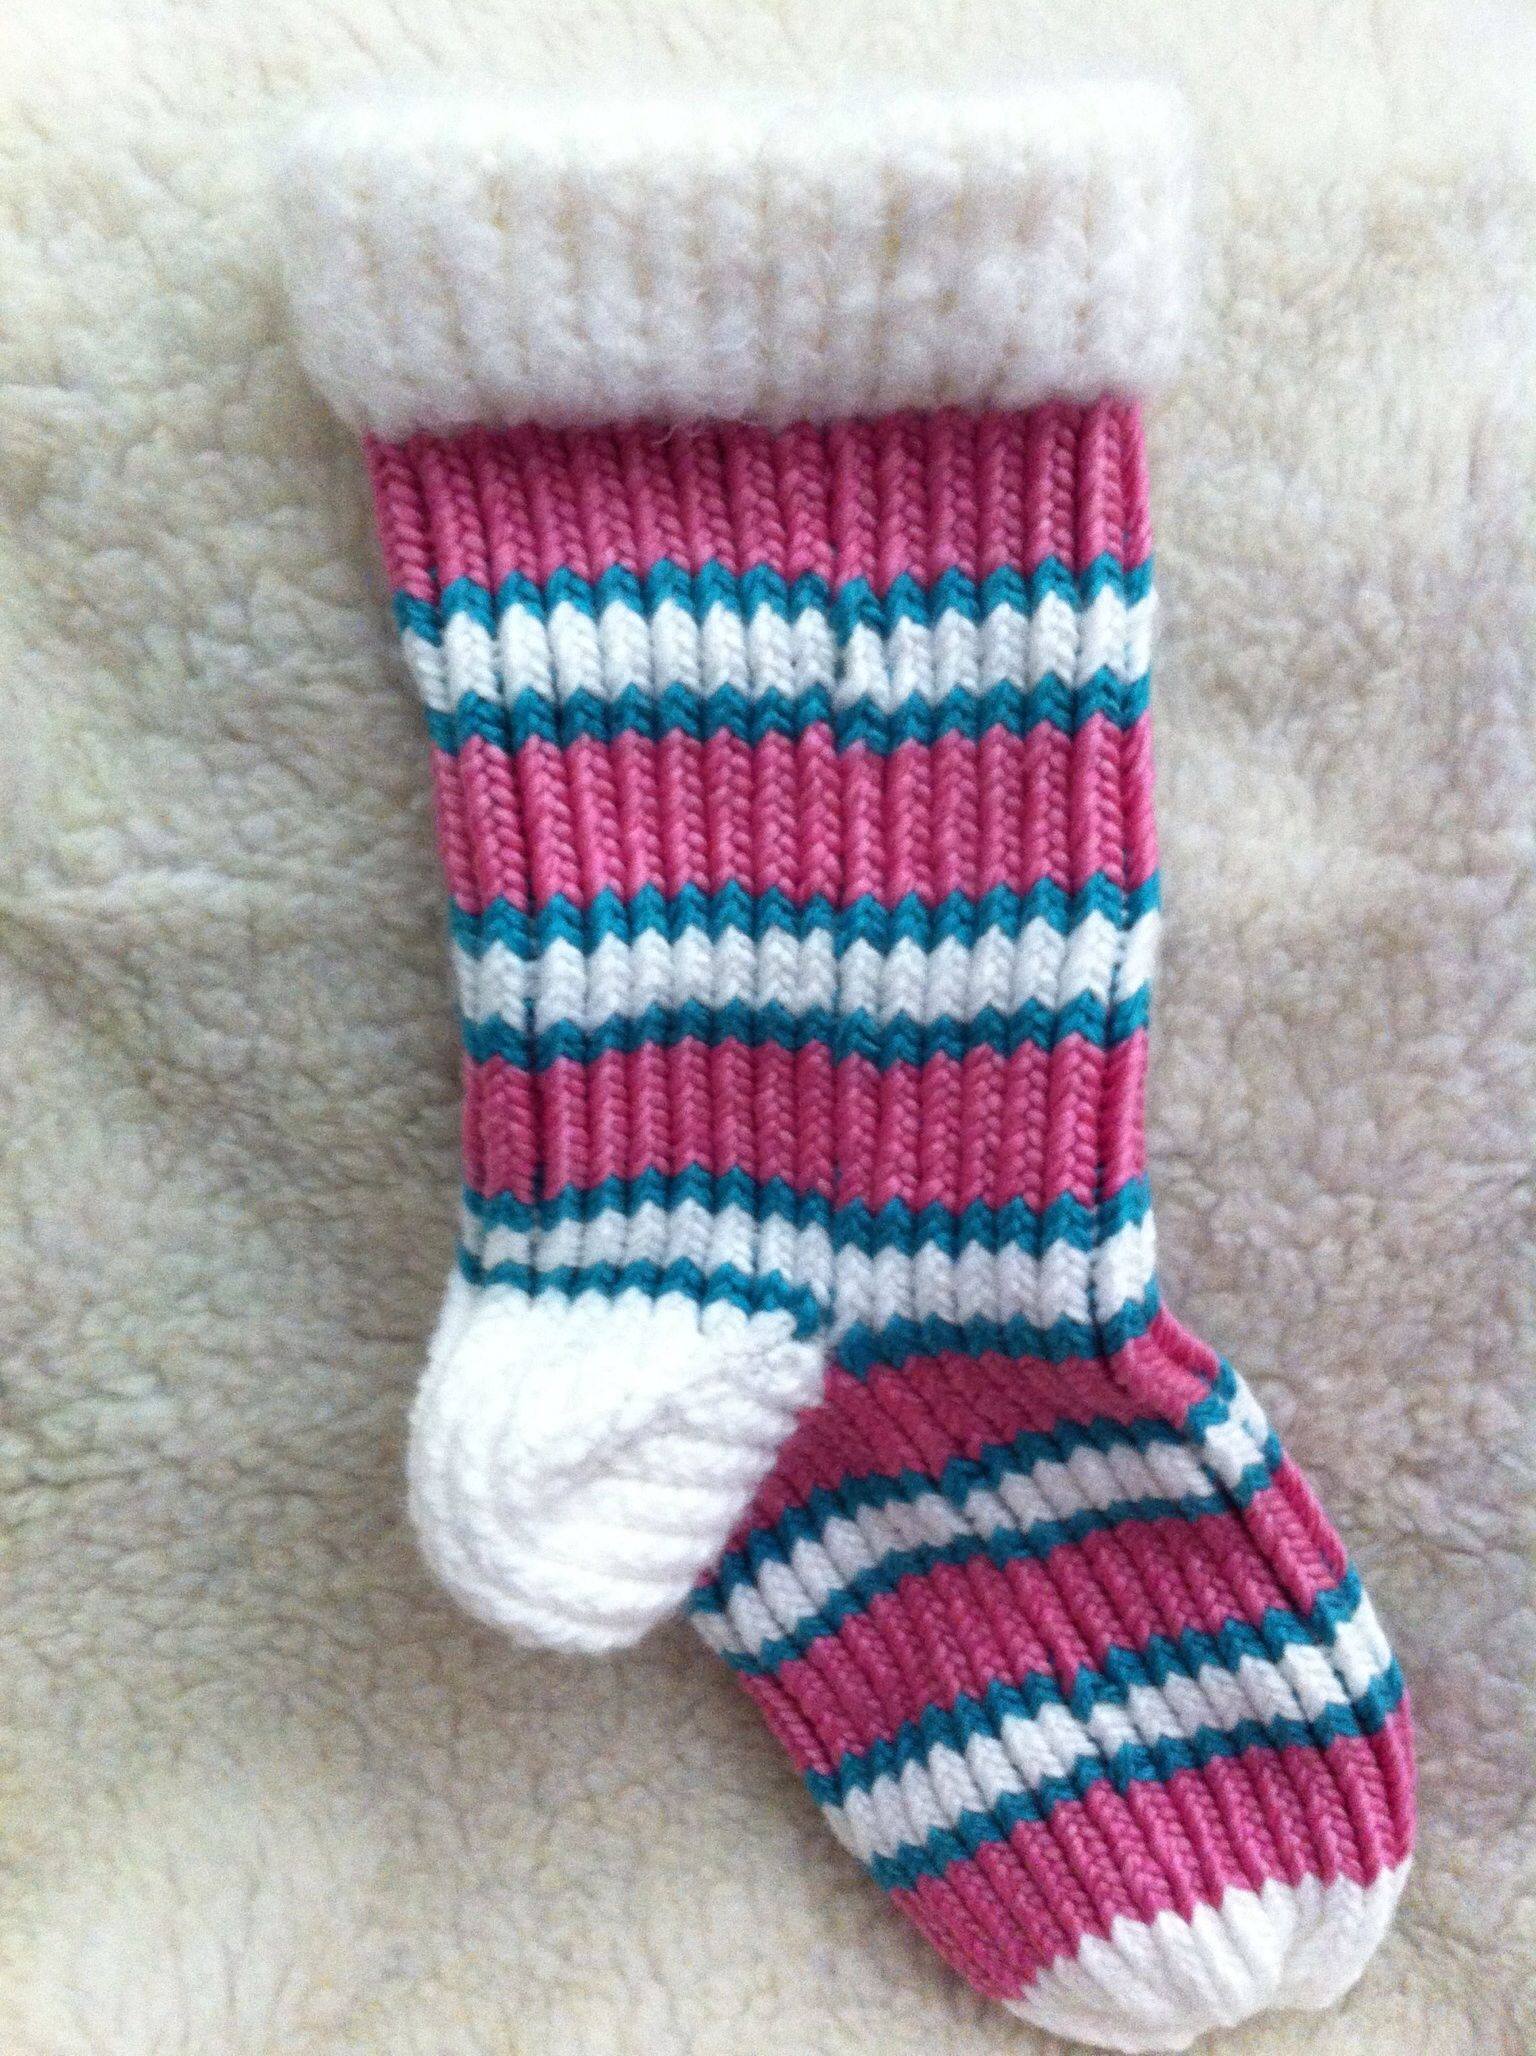 Christmas Stocking Loom Knitting Pattern : Loom knit Christmas stockings custom made Christmas ...